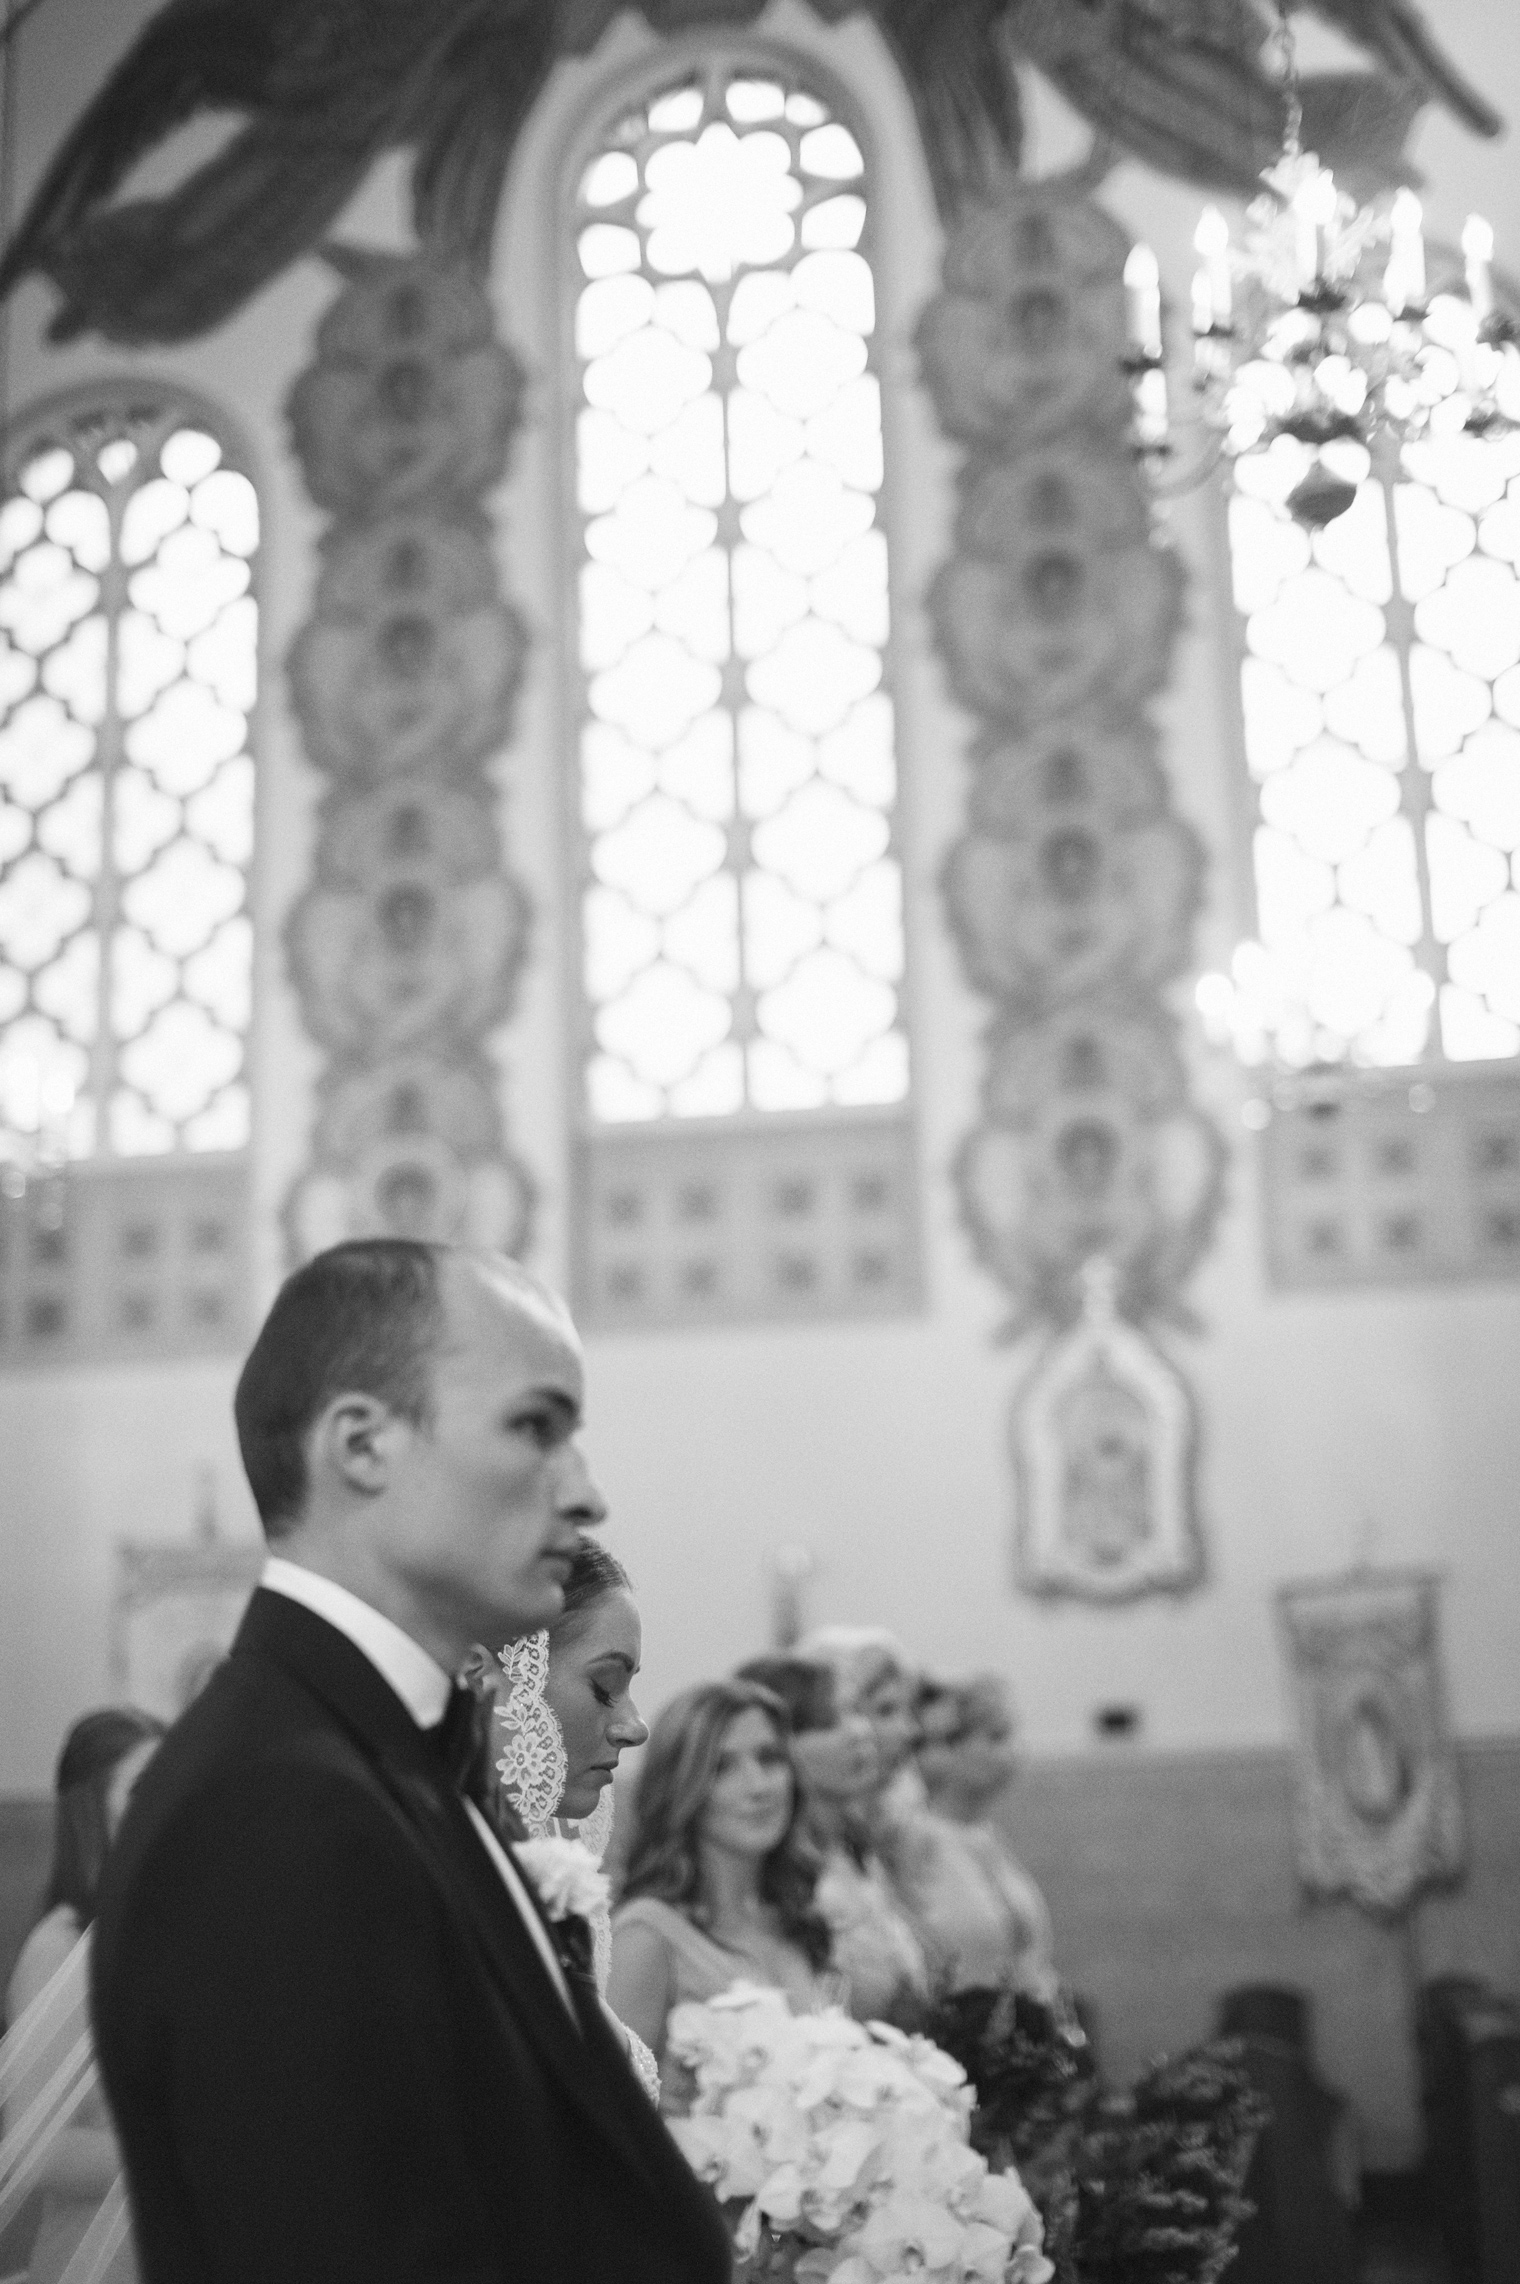 Bride and groom during wedding ceremony at Immaculate Conception Ukrainian Rite Catholic Church in Hamtramck Michigan.